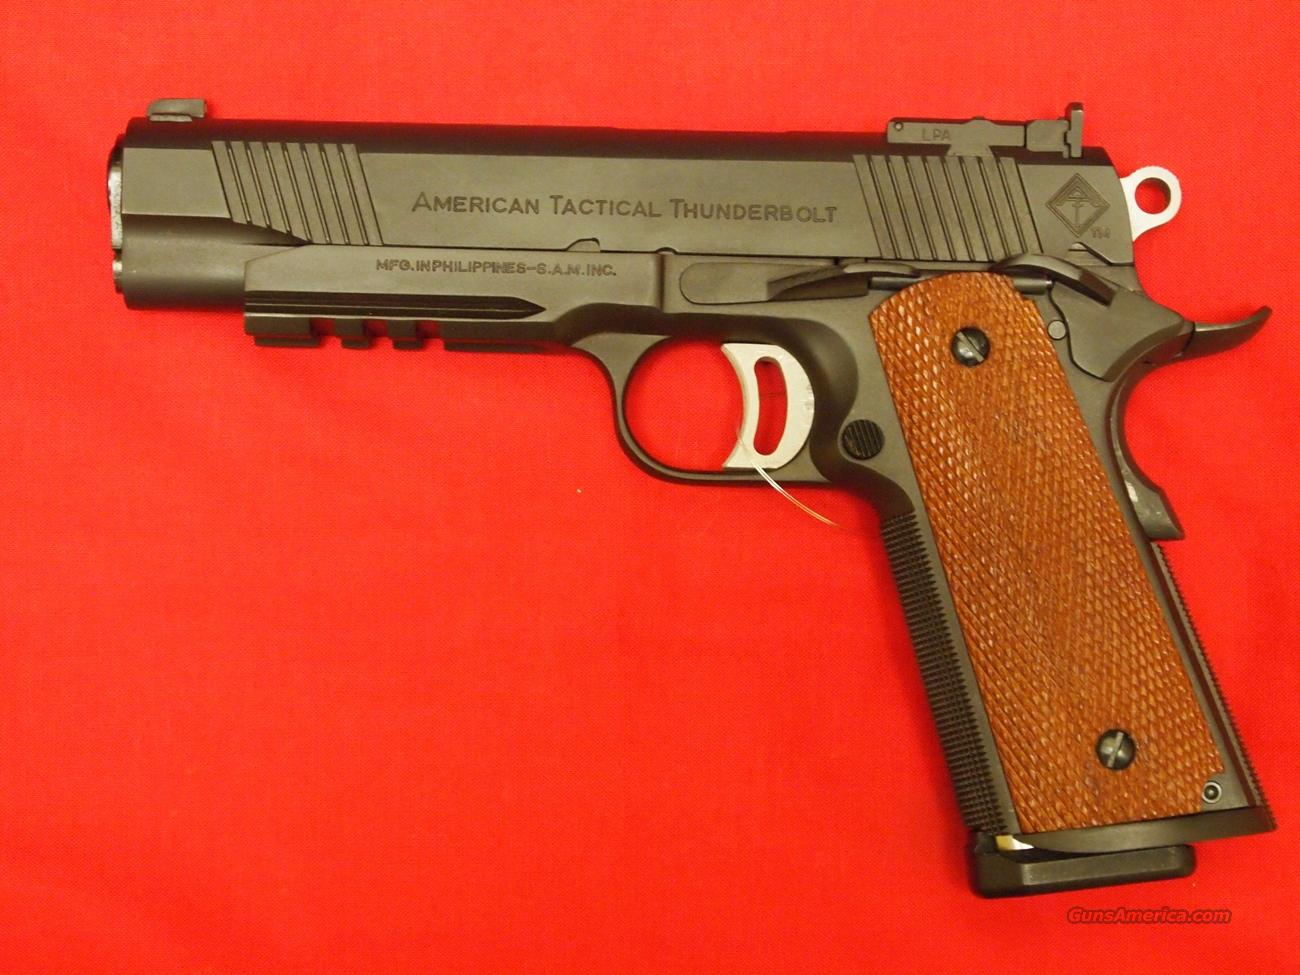 AM Tactical 1911 Thunderbolt .45ACP  Guns > Pistols > American Tactical Imports Pistols